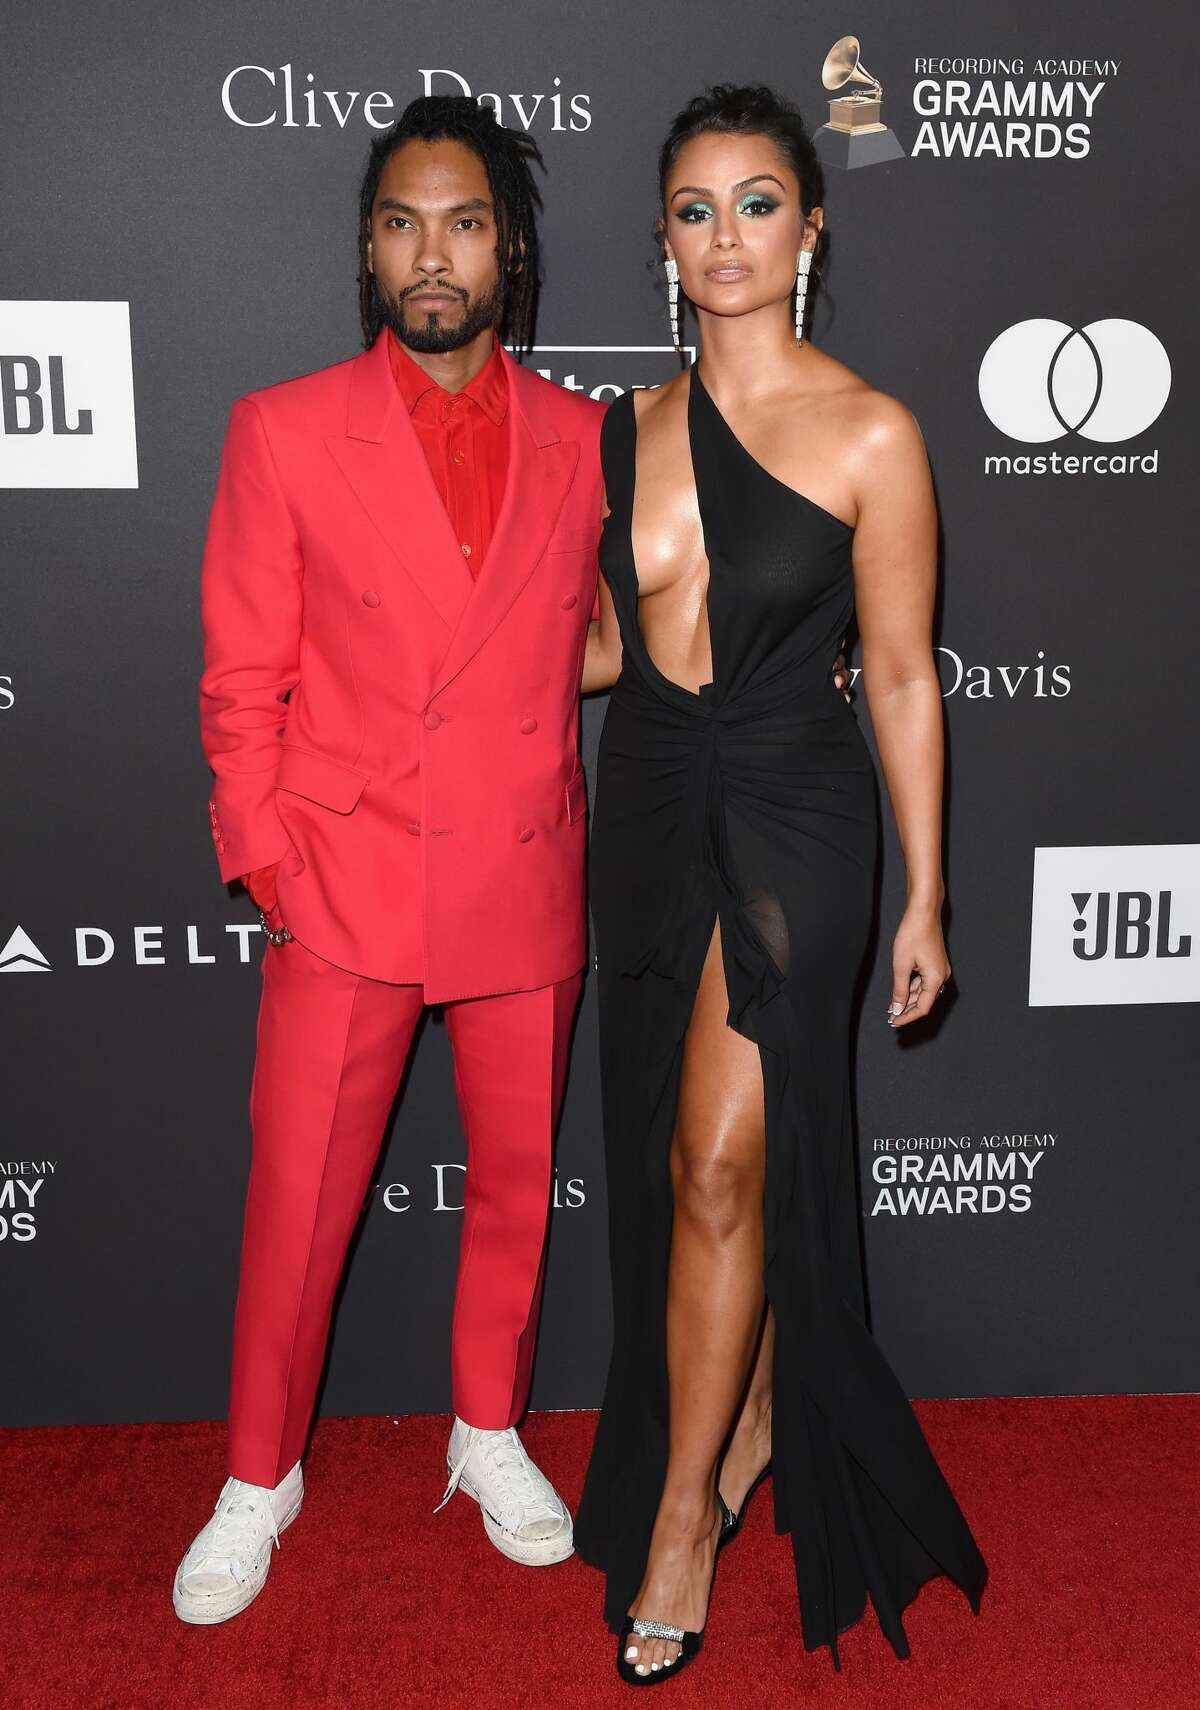 BEVERLY HILLS, CALIFORNIA - FEBRUARY 09: Miguel and Nazanin Mandi attend The Recording Academy and Clive Davis' 2019 Pre-GRAMMY Gala at The Beverly Hilton Hotel on February 09, 2019 in Beverly Hills, California. (Photo by Axelle/Bauer-Griffin/FilmMagic)